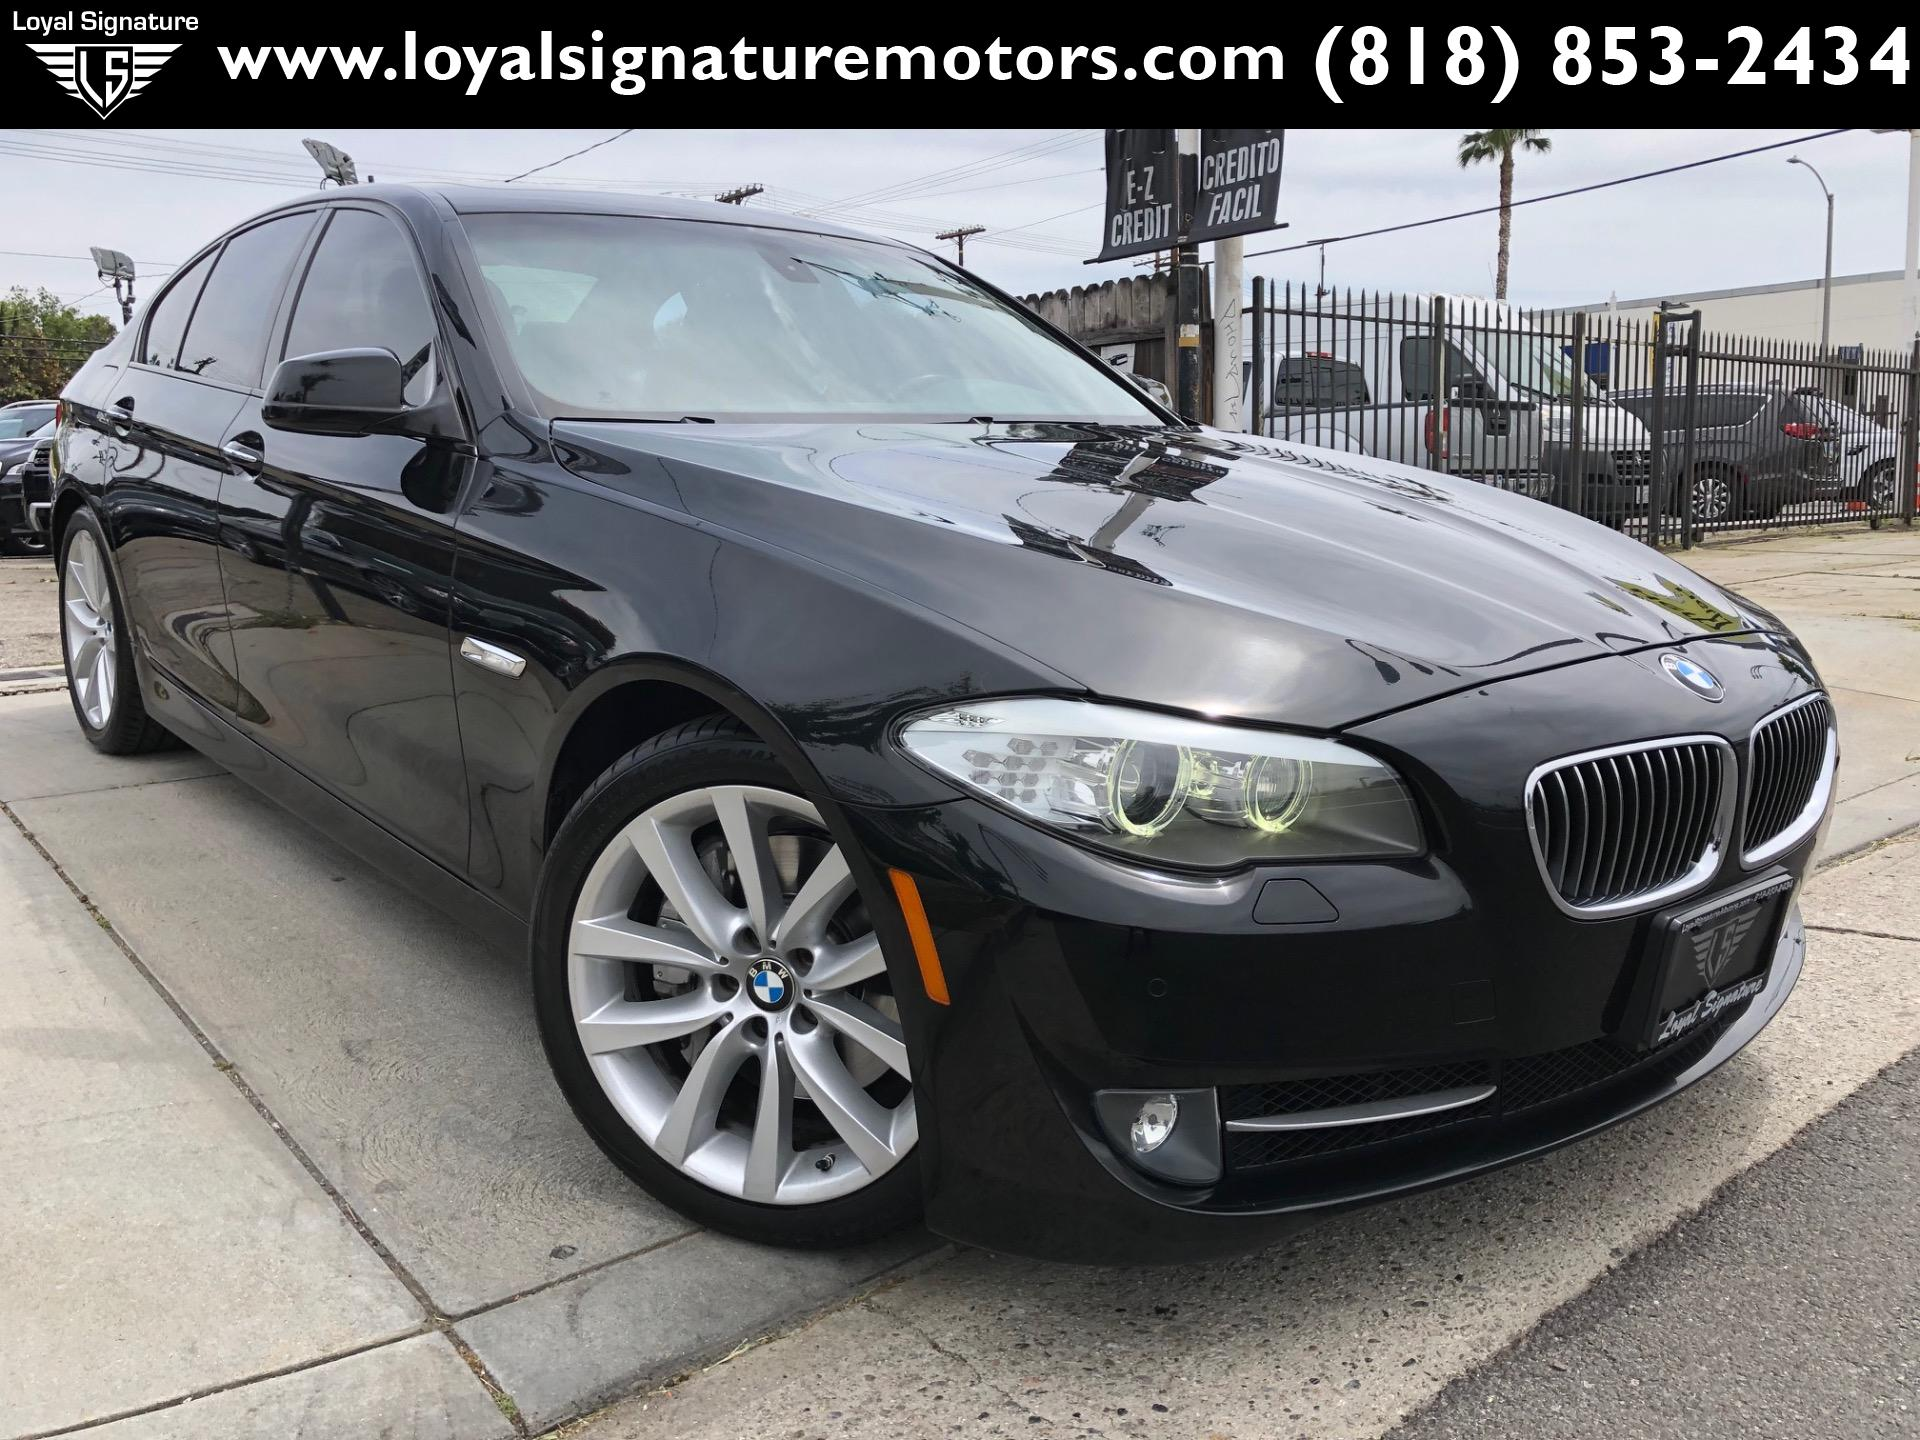 Used 2011 BMW 5 Series 535i | Van Nuys, CA